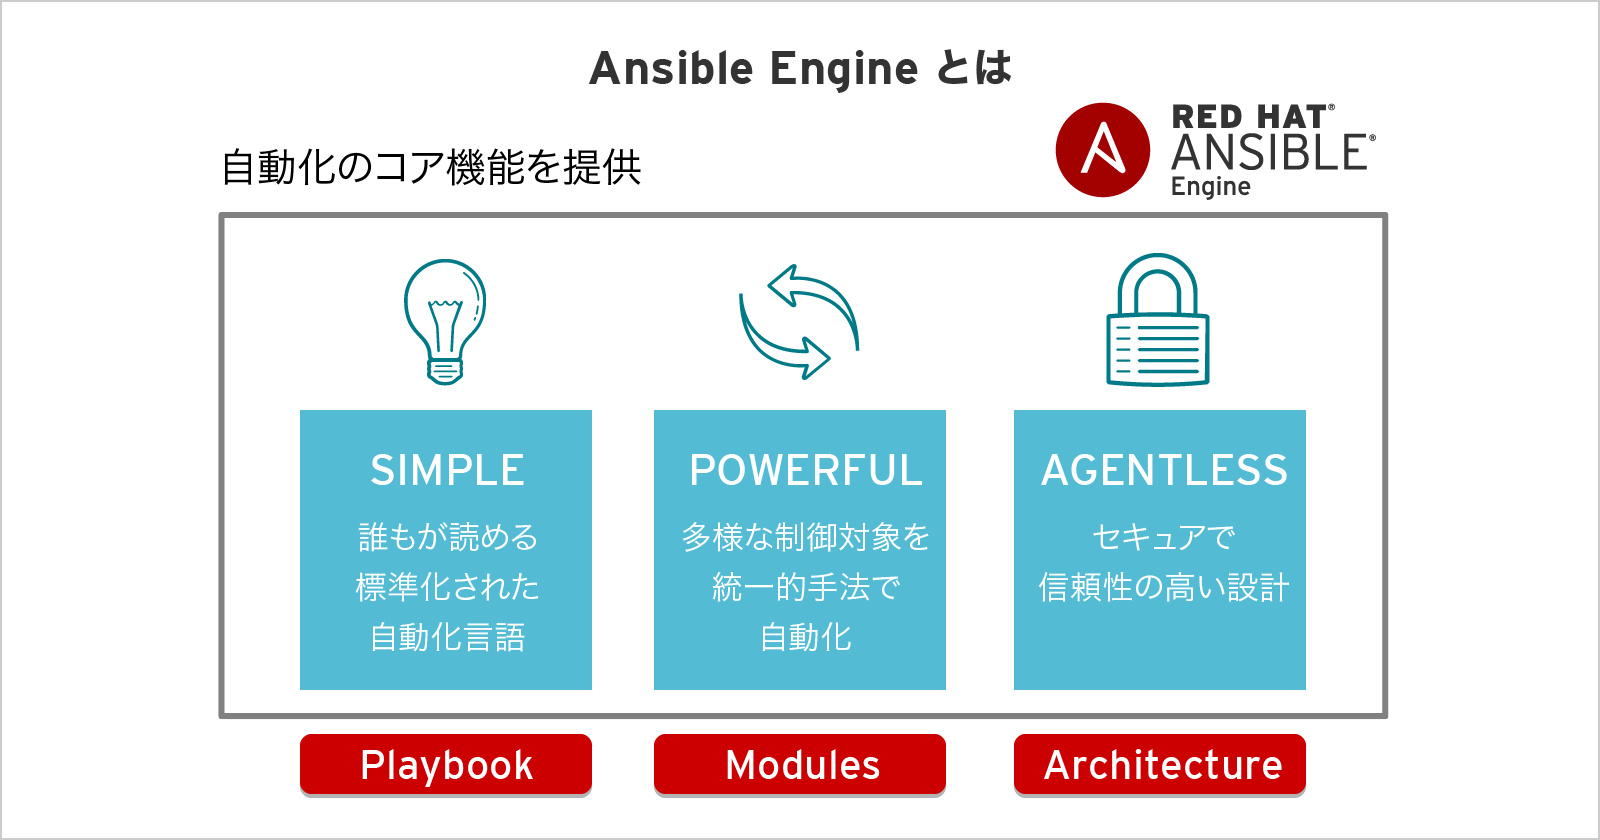 Ansible Engine とは